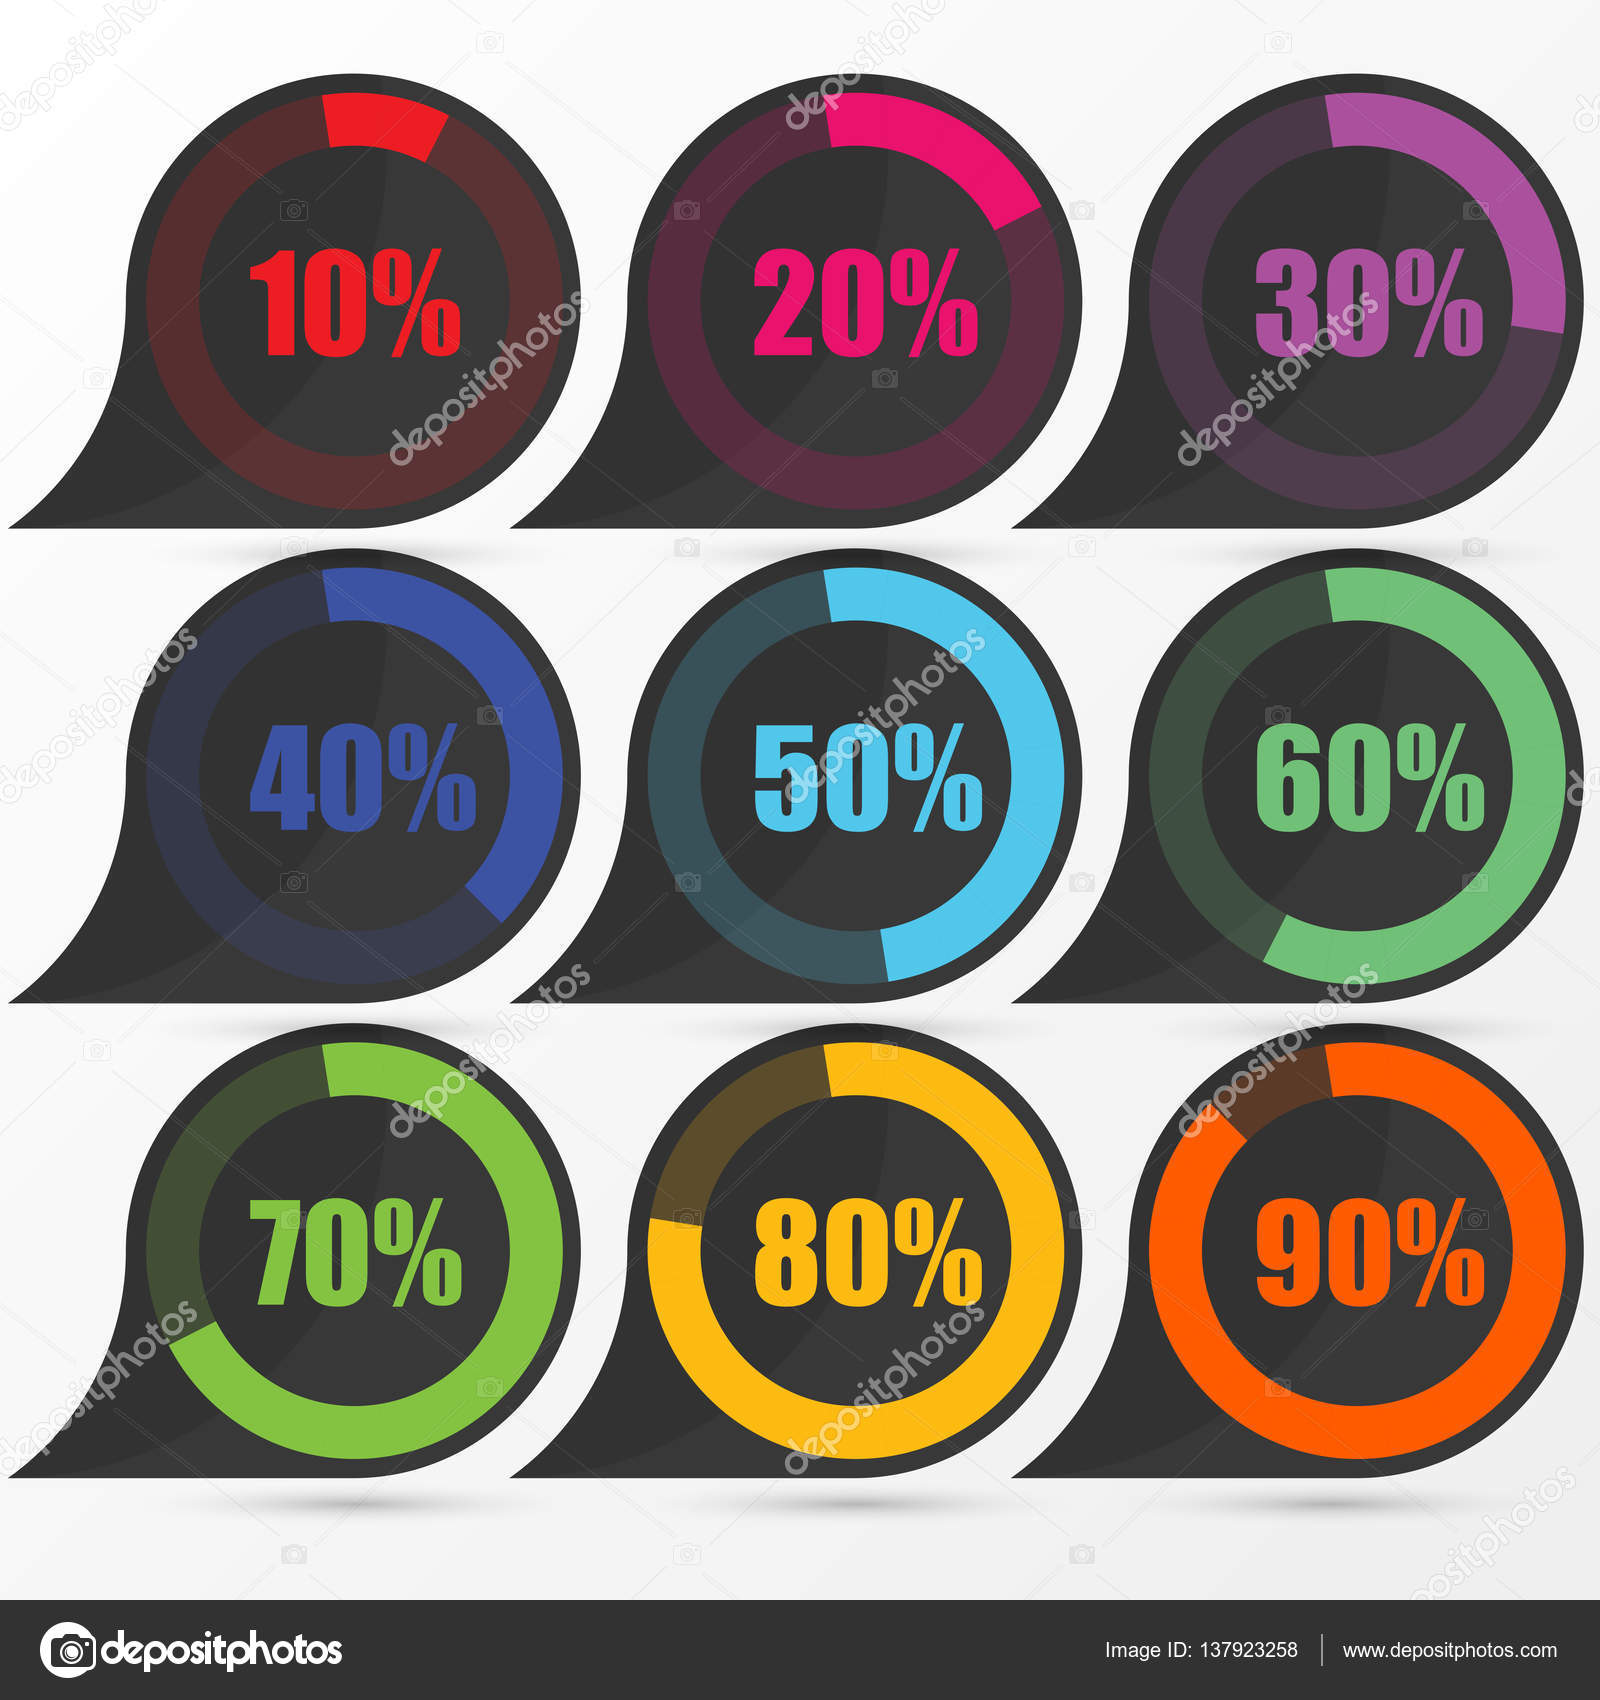 Circle diagram pie charts infographic elements vector stock circle diagram pie charts infographic elements vector illustration vector by ondrakulisekspoluzaci ccuart Image collections